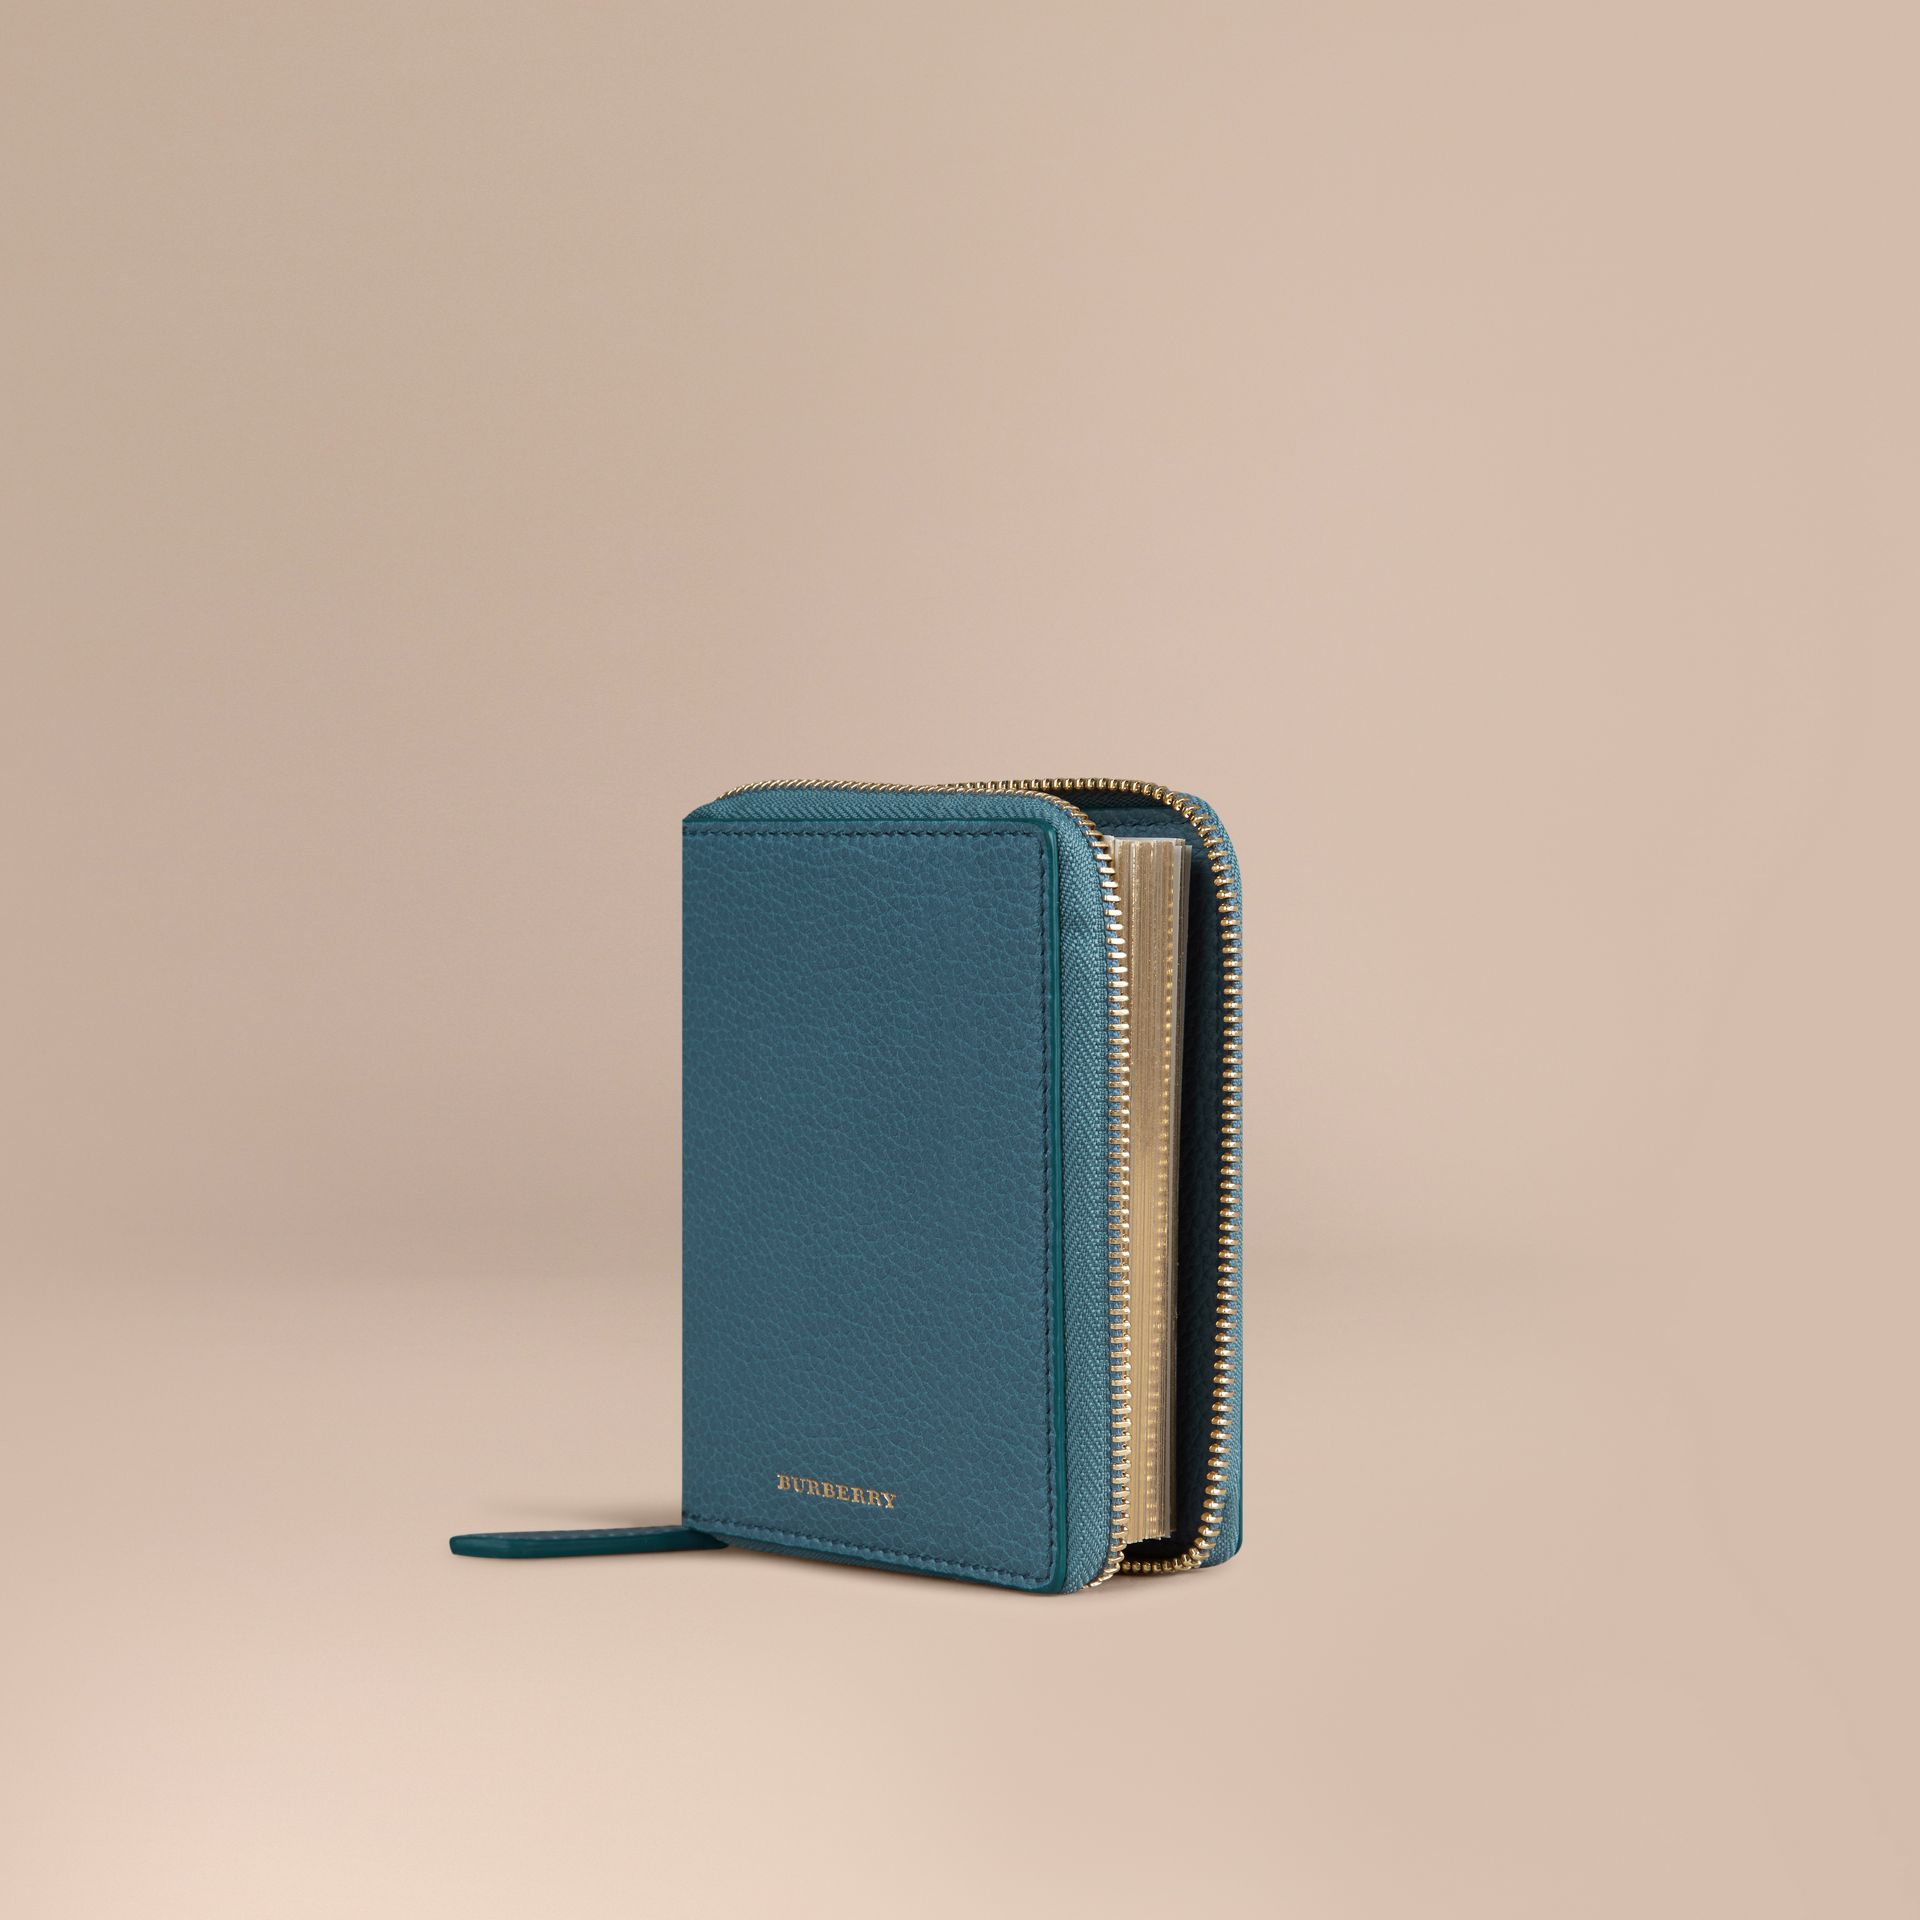 Ziparound Grainy Leather Mini Notebook in Dusty Teal | Burberry - gallery image 1